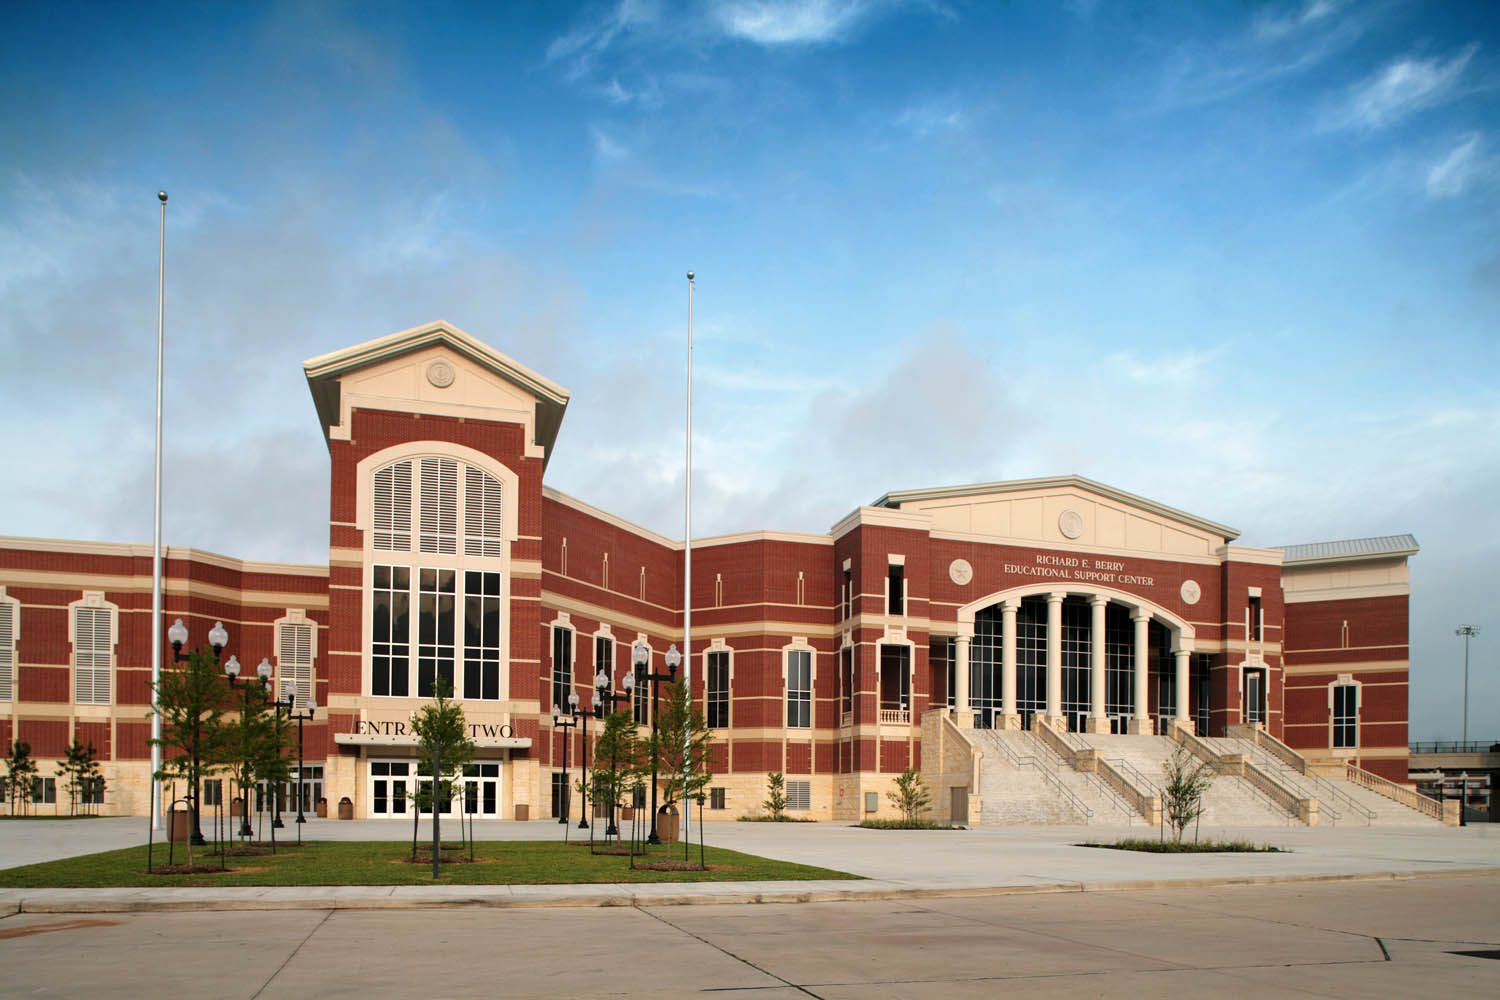 The Berry Center, a multipurpose sports complex serving